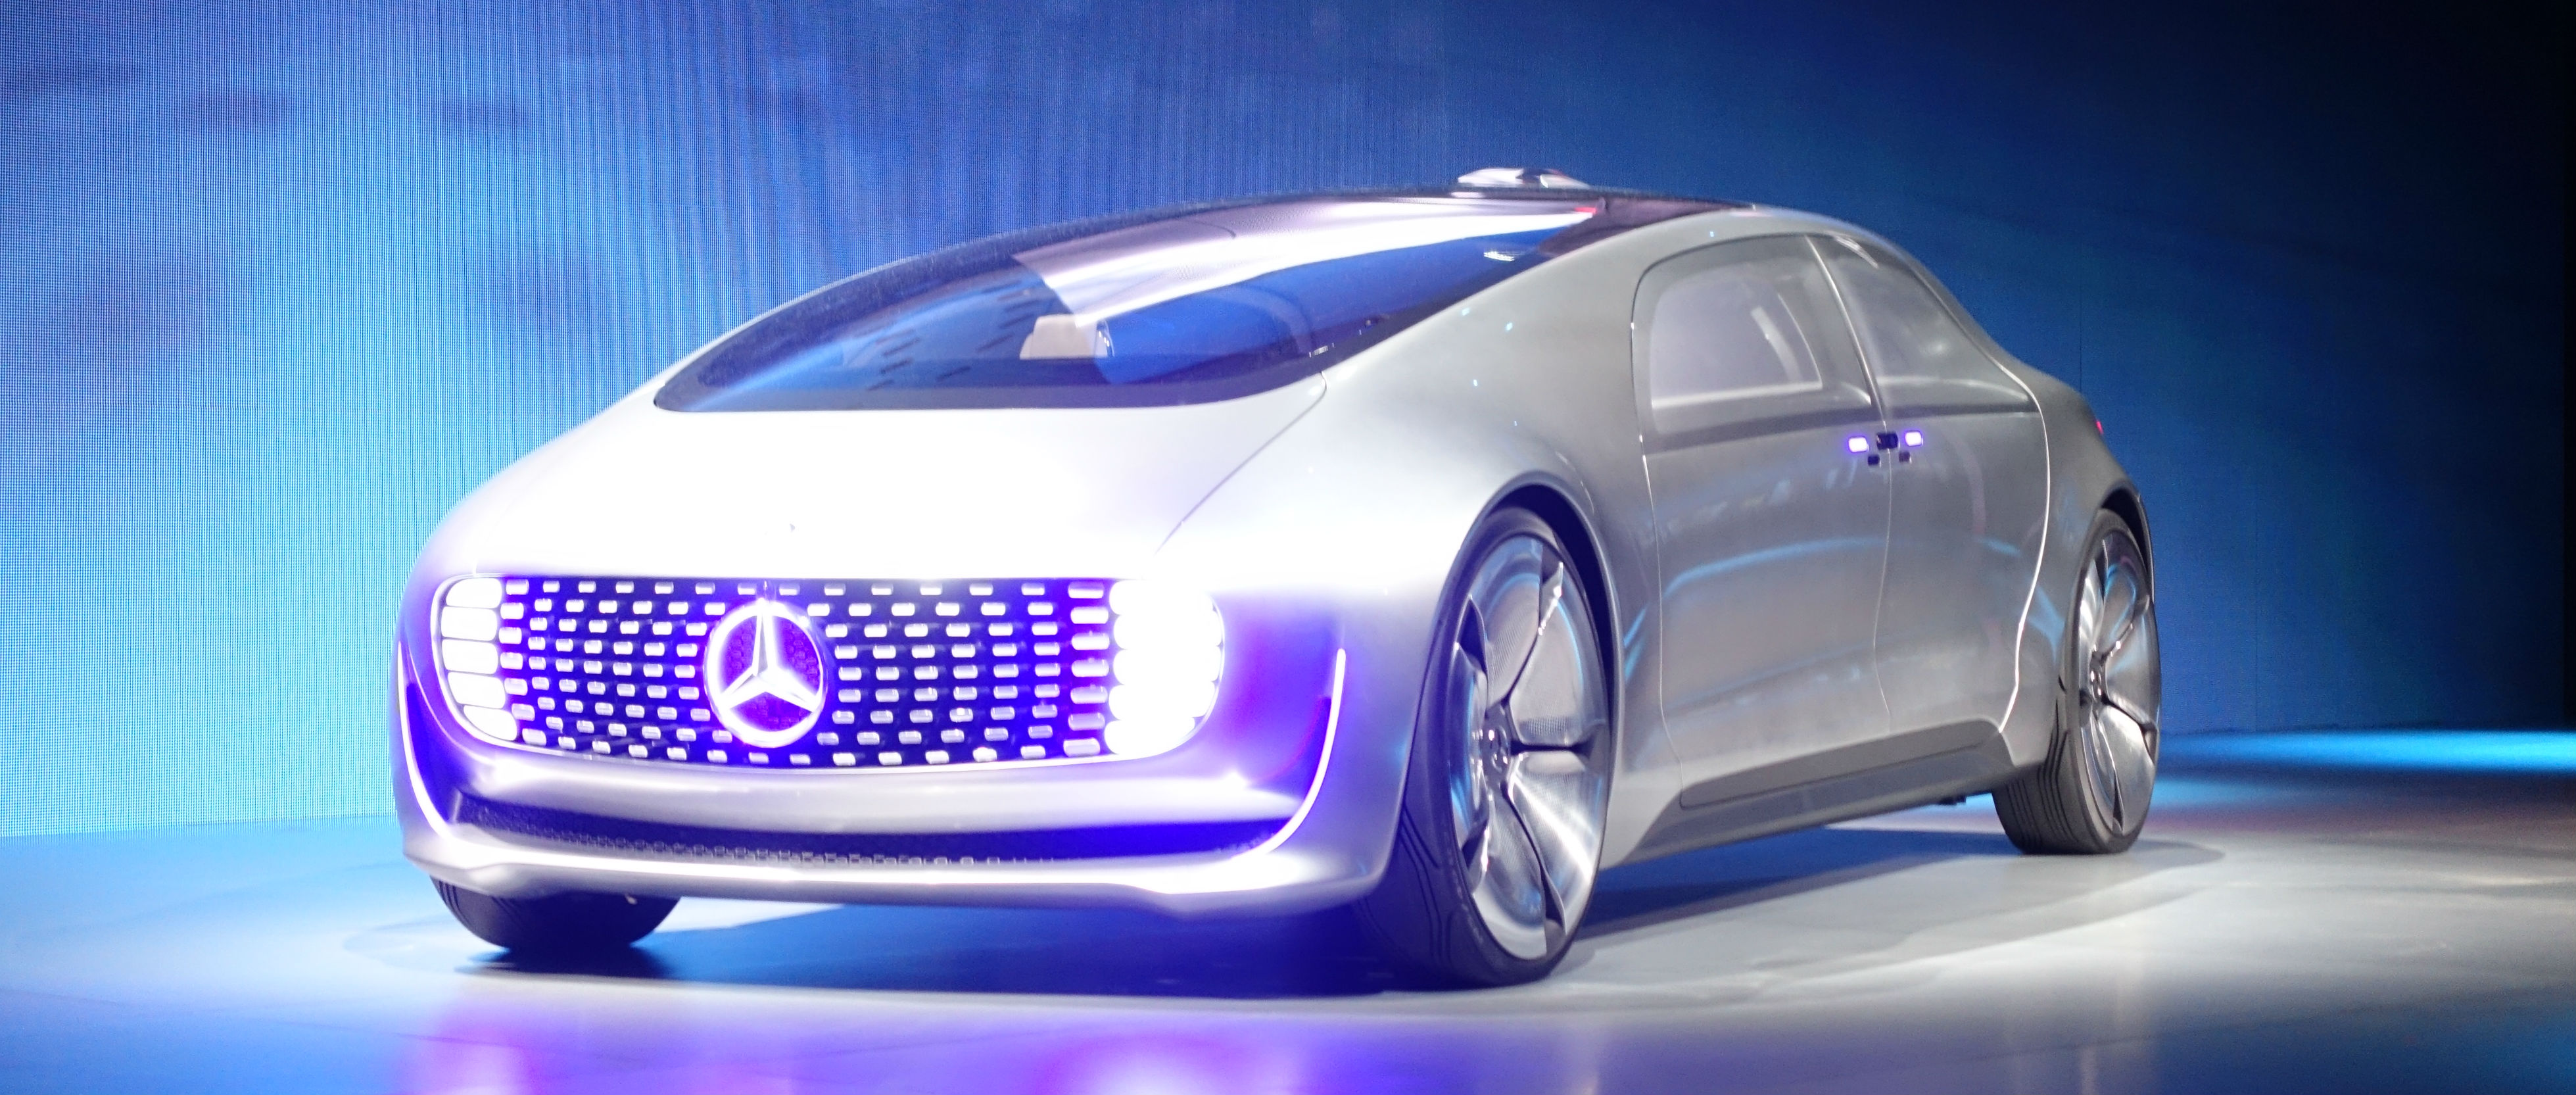 Mercedes-Benz Self-Driving Car Gets CES Going - Reviewed ...